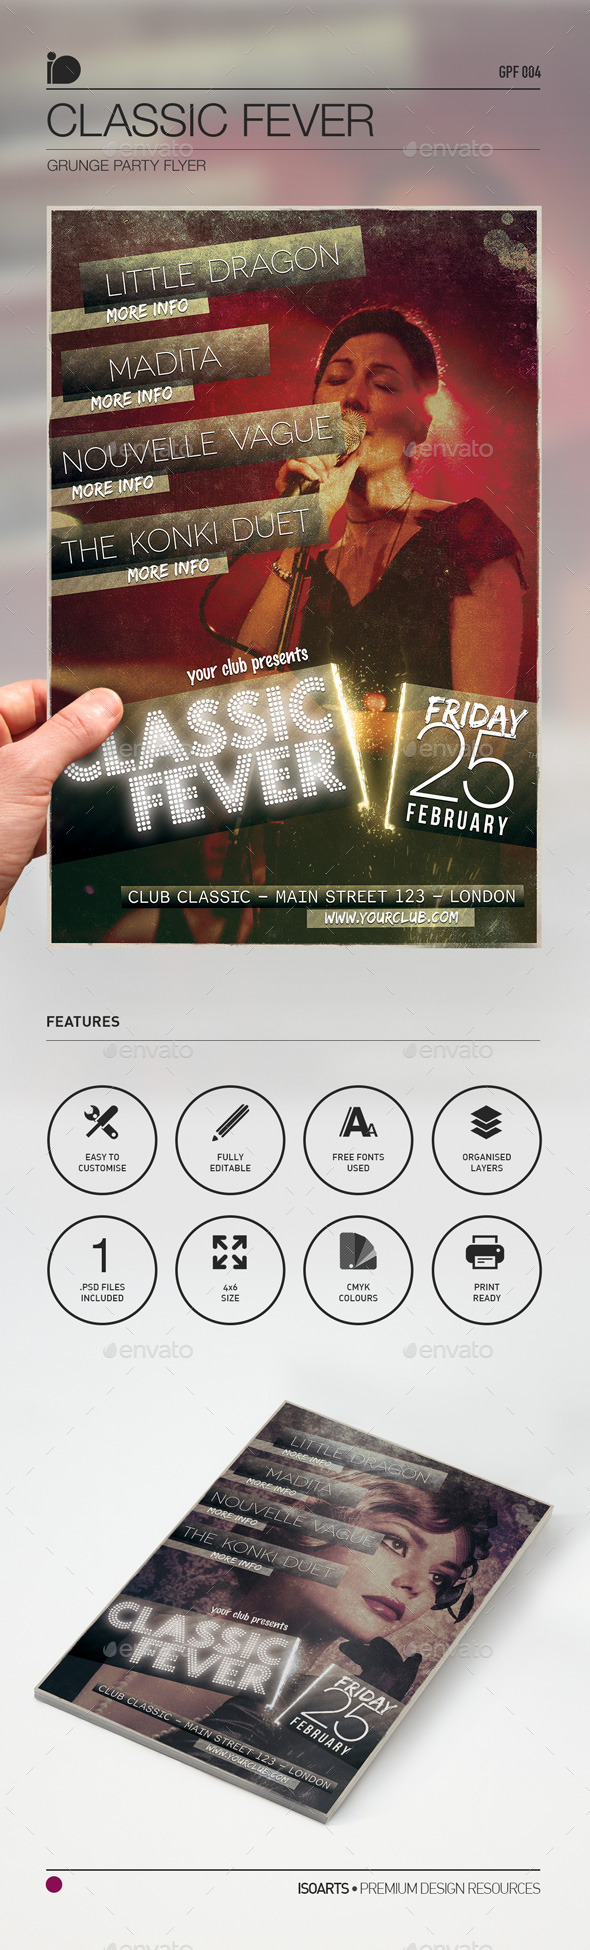 Grunge Party Flyer • Classic Fever - Clubs & Parties Events